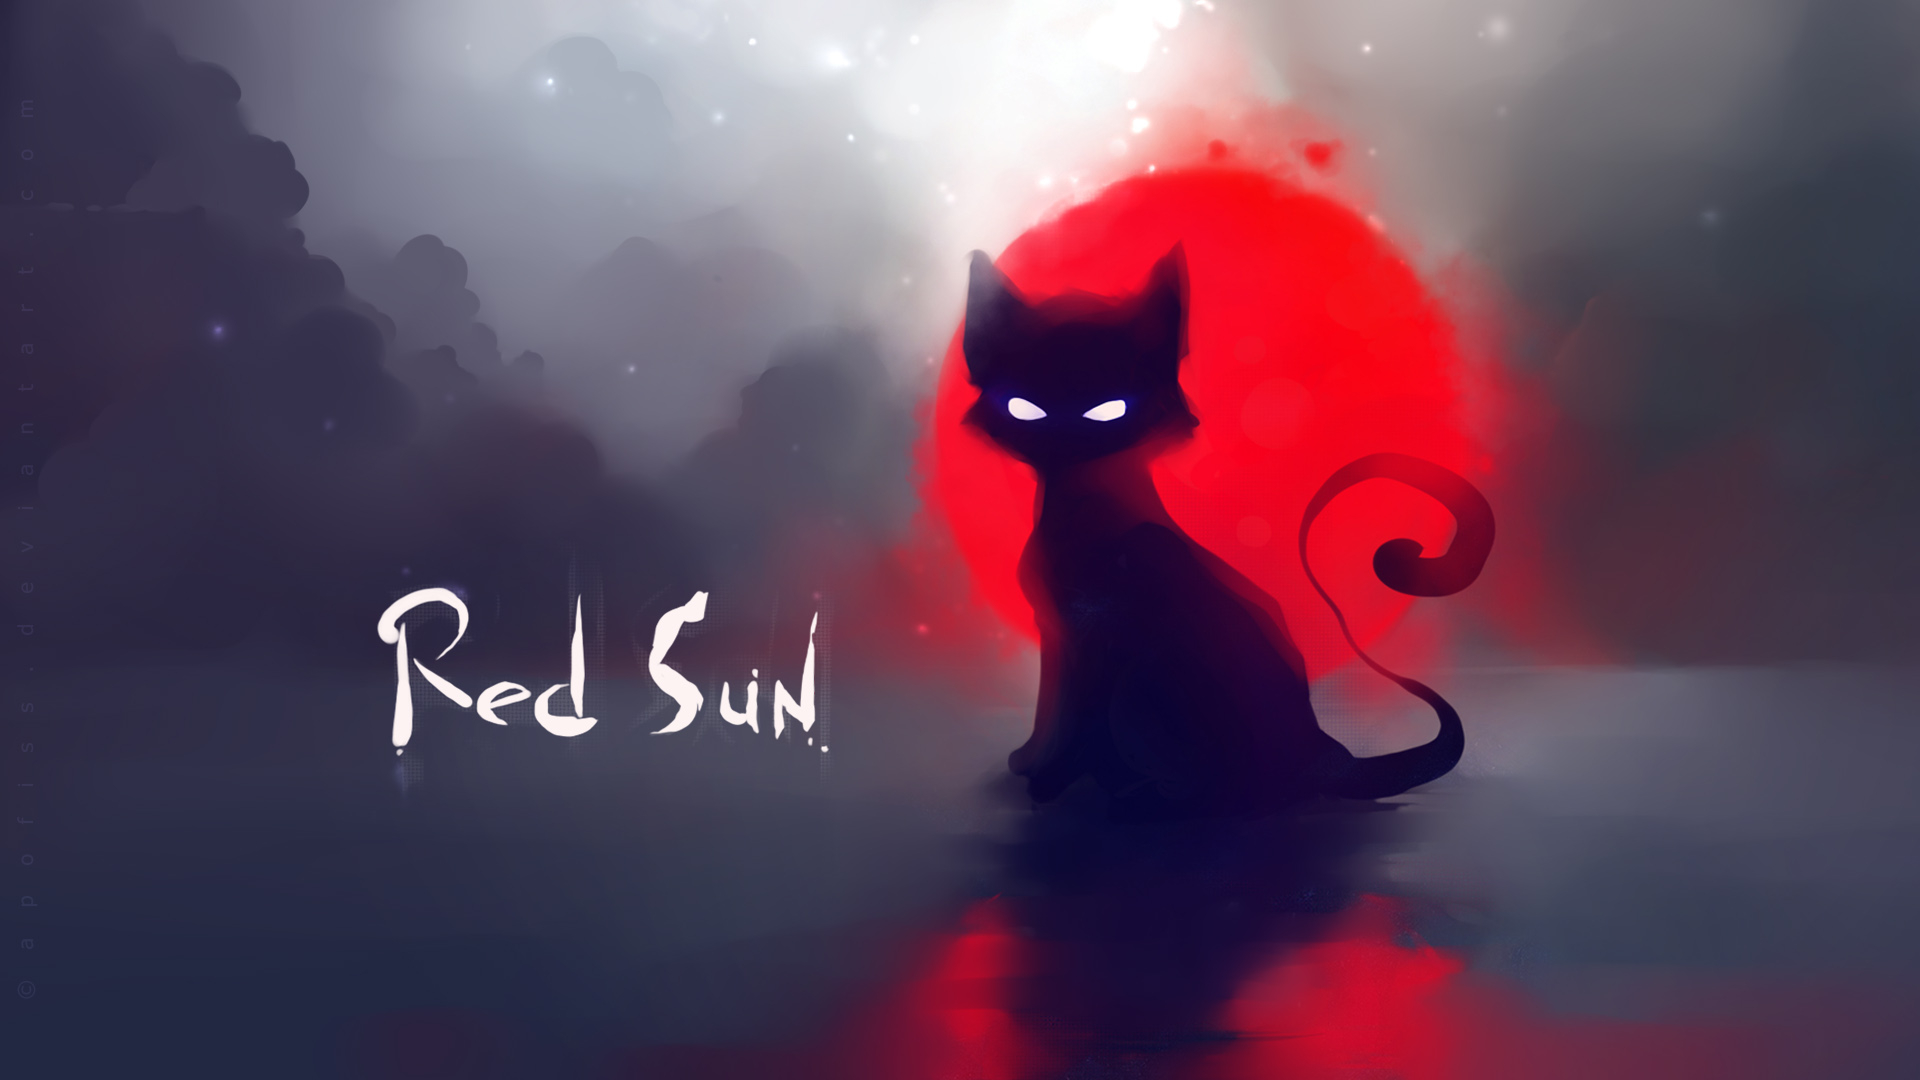 Red Sun by Apofiss